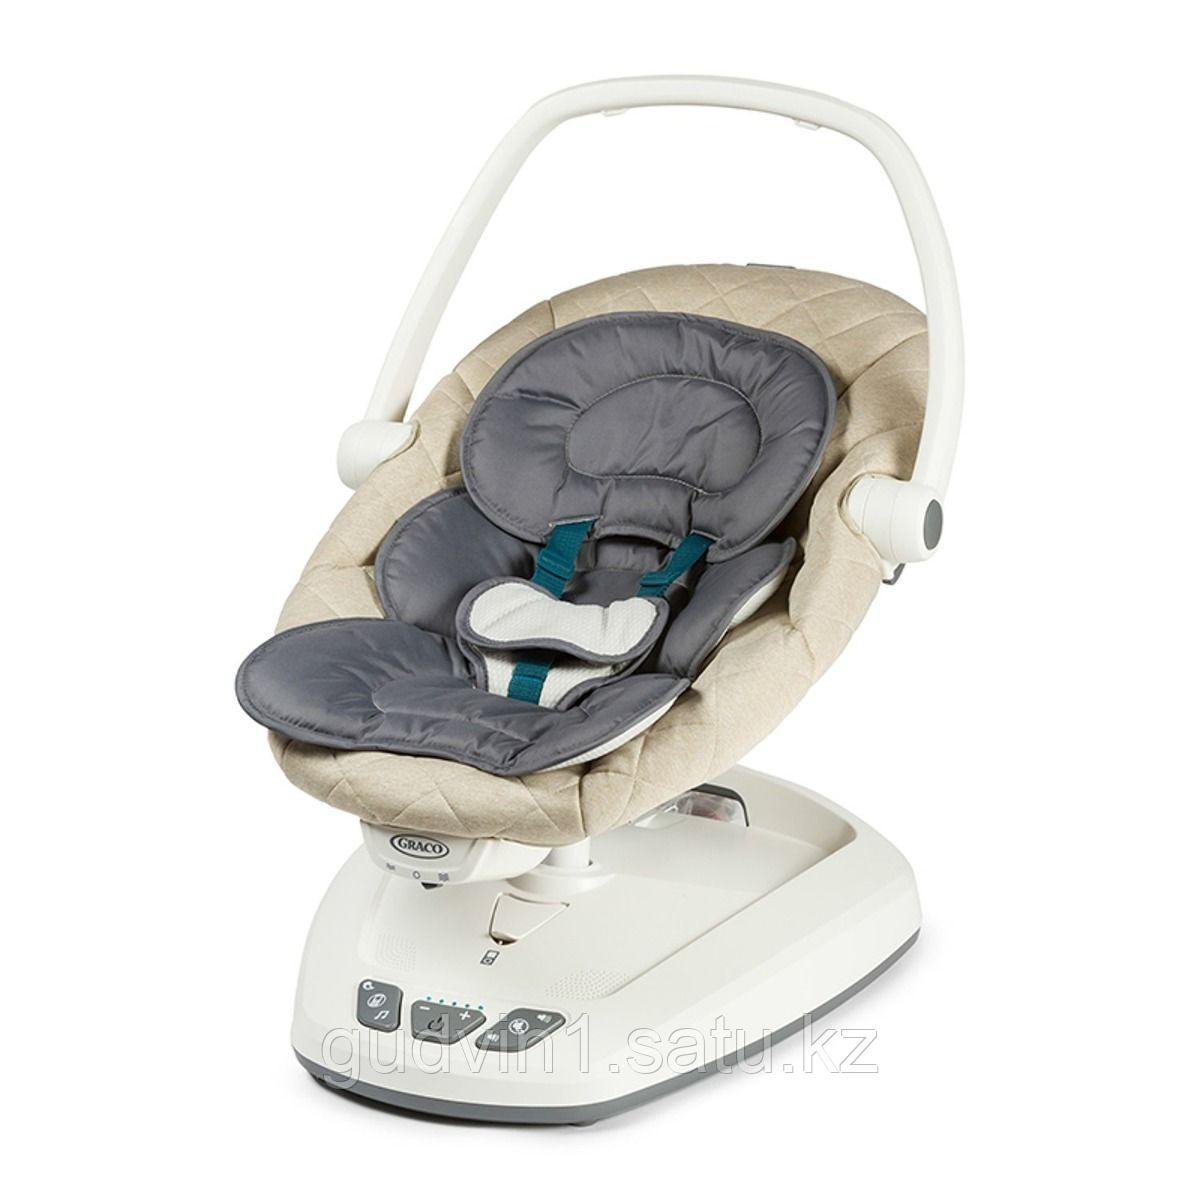 ЭЛЕКТРОКАЧЕЛЬ MOVE WITH ME (GRACO) SPARROW